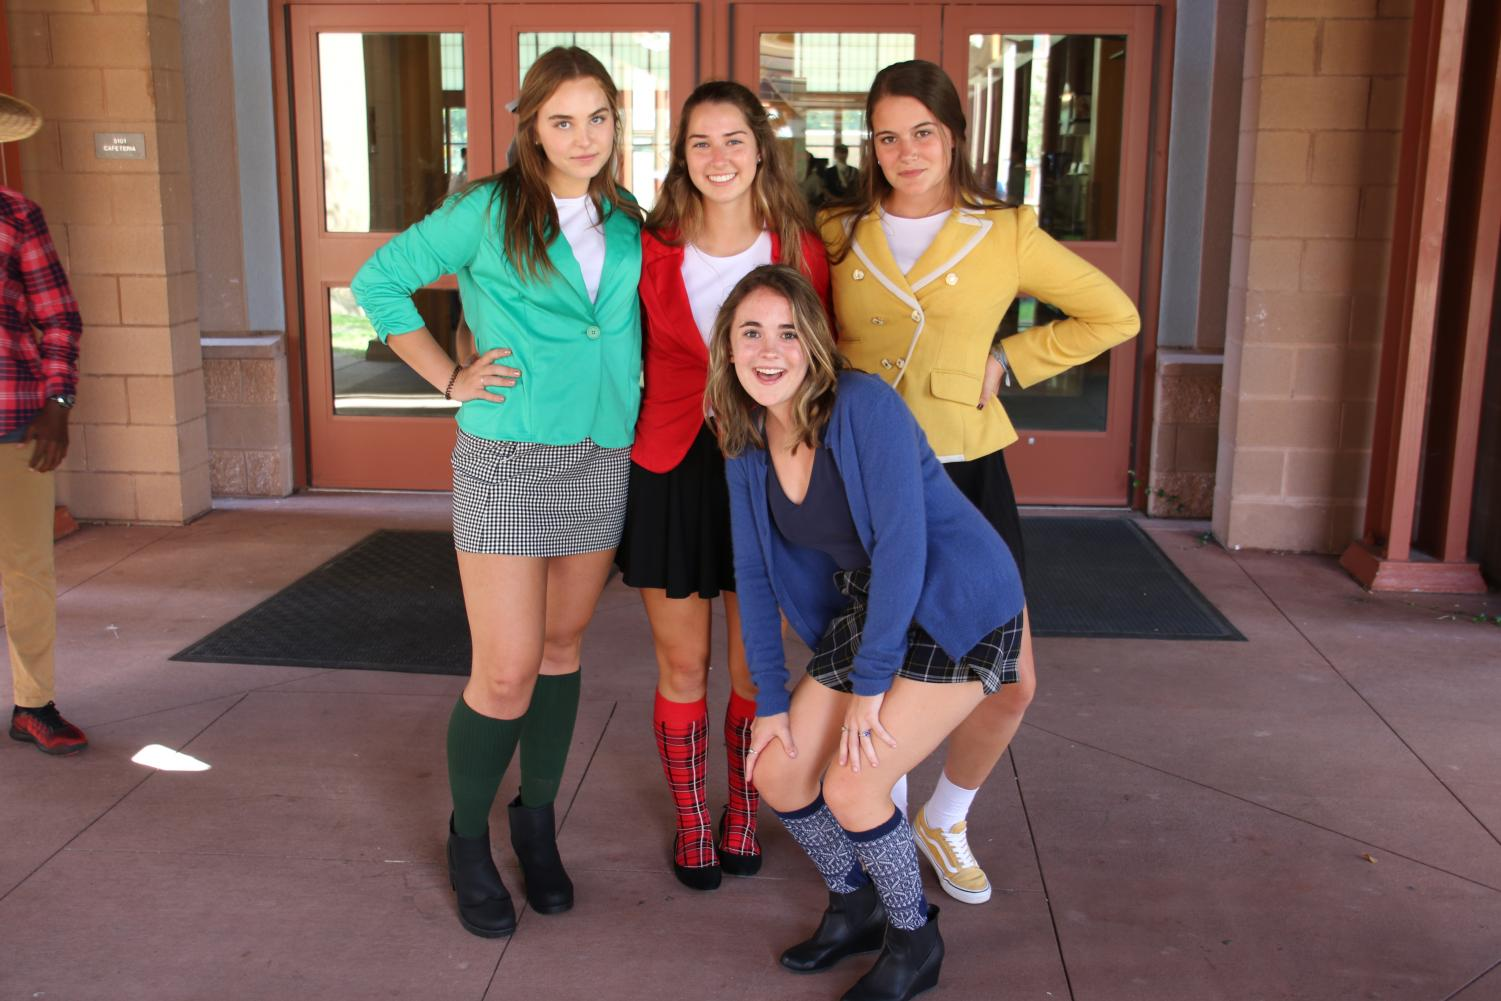 Students+pose+in+their+Heathers+outfits.